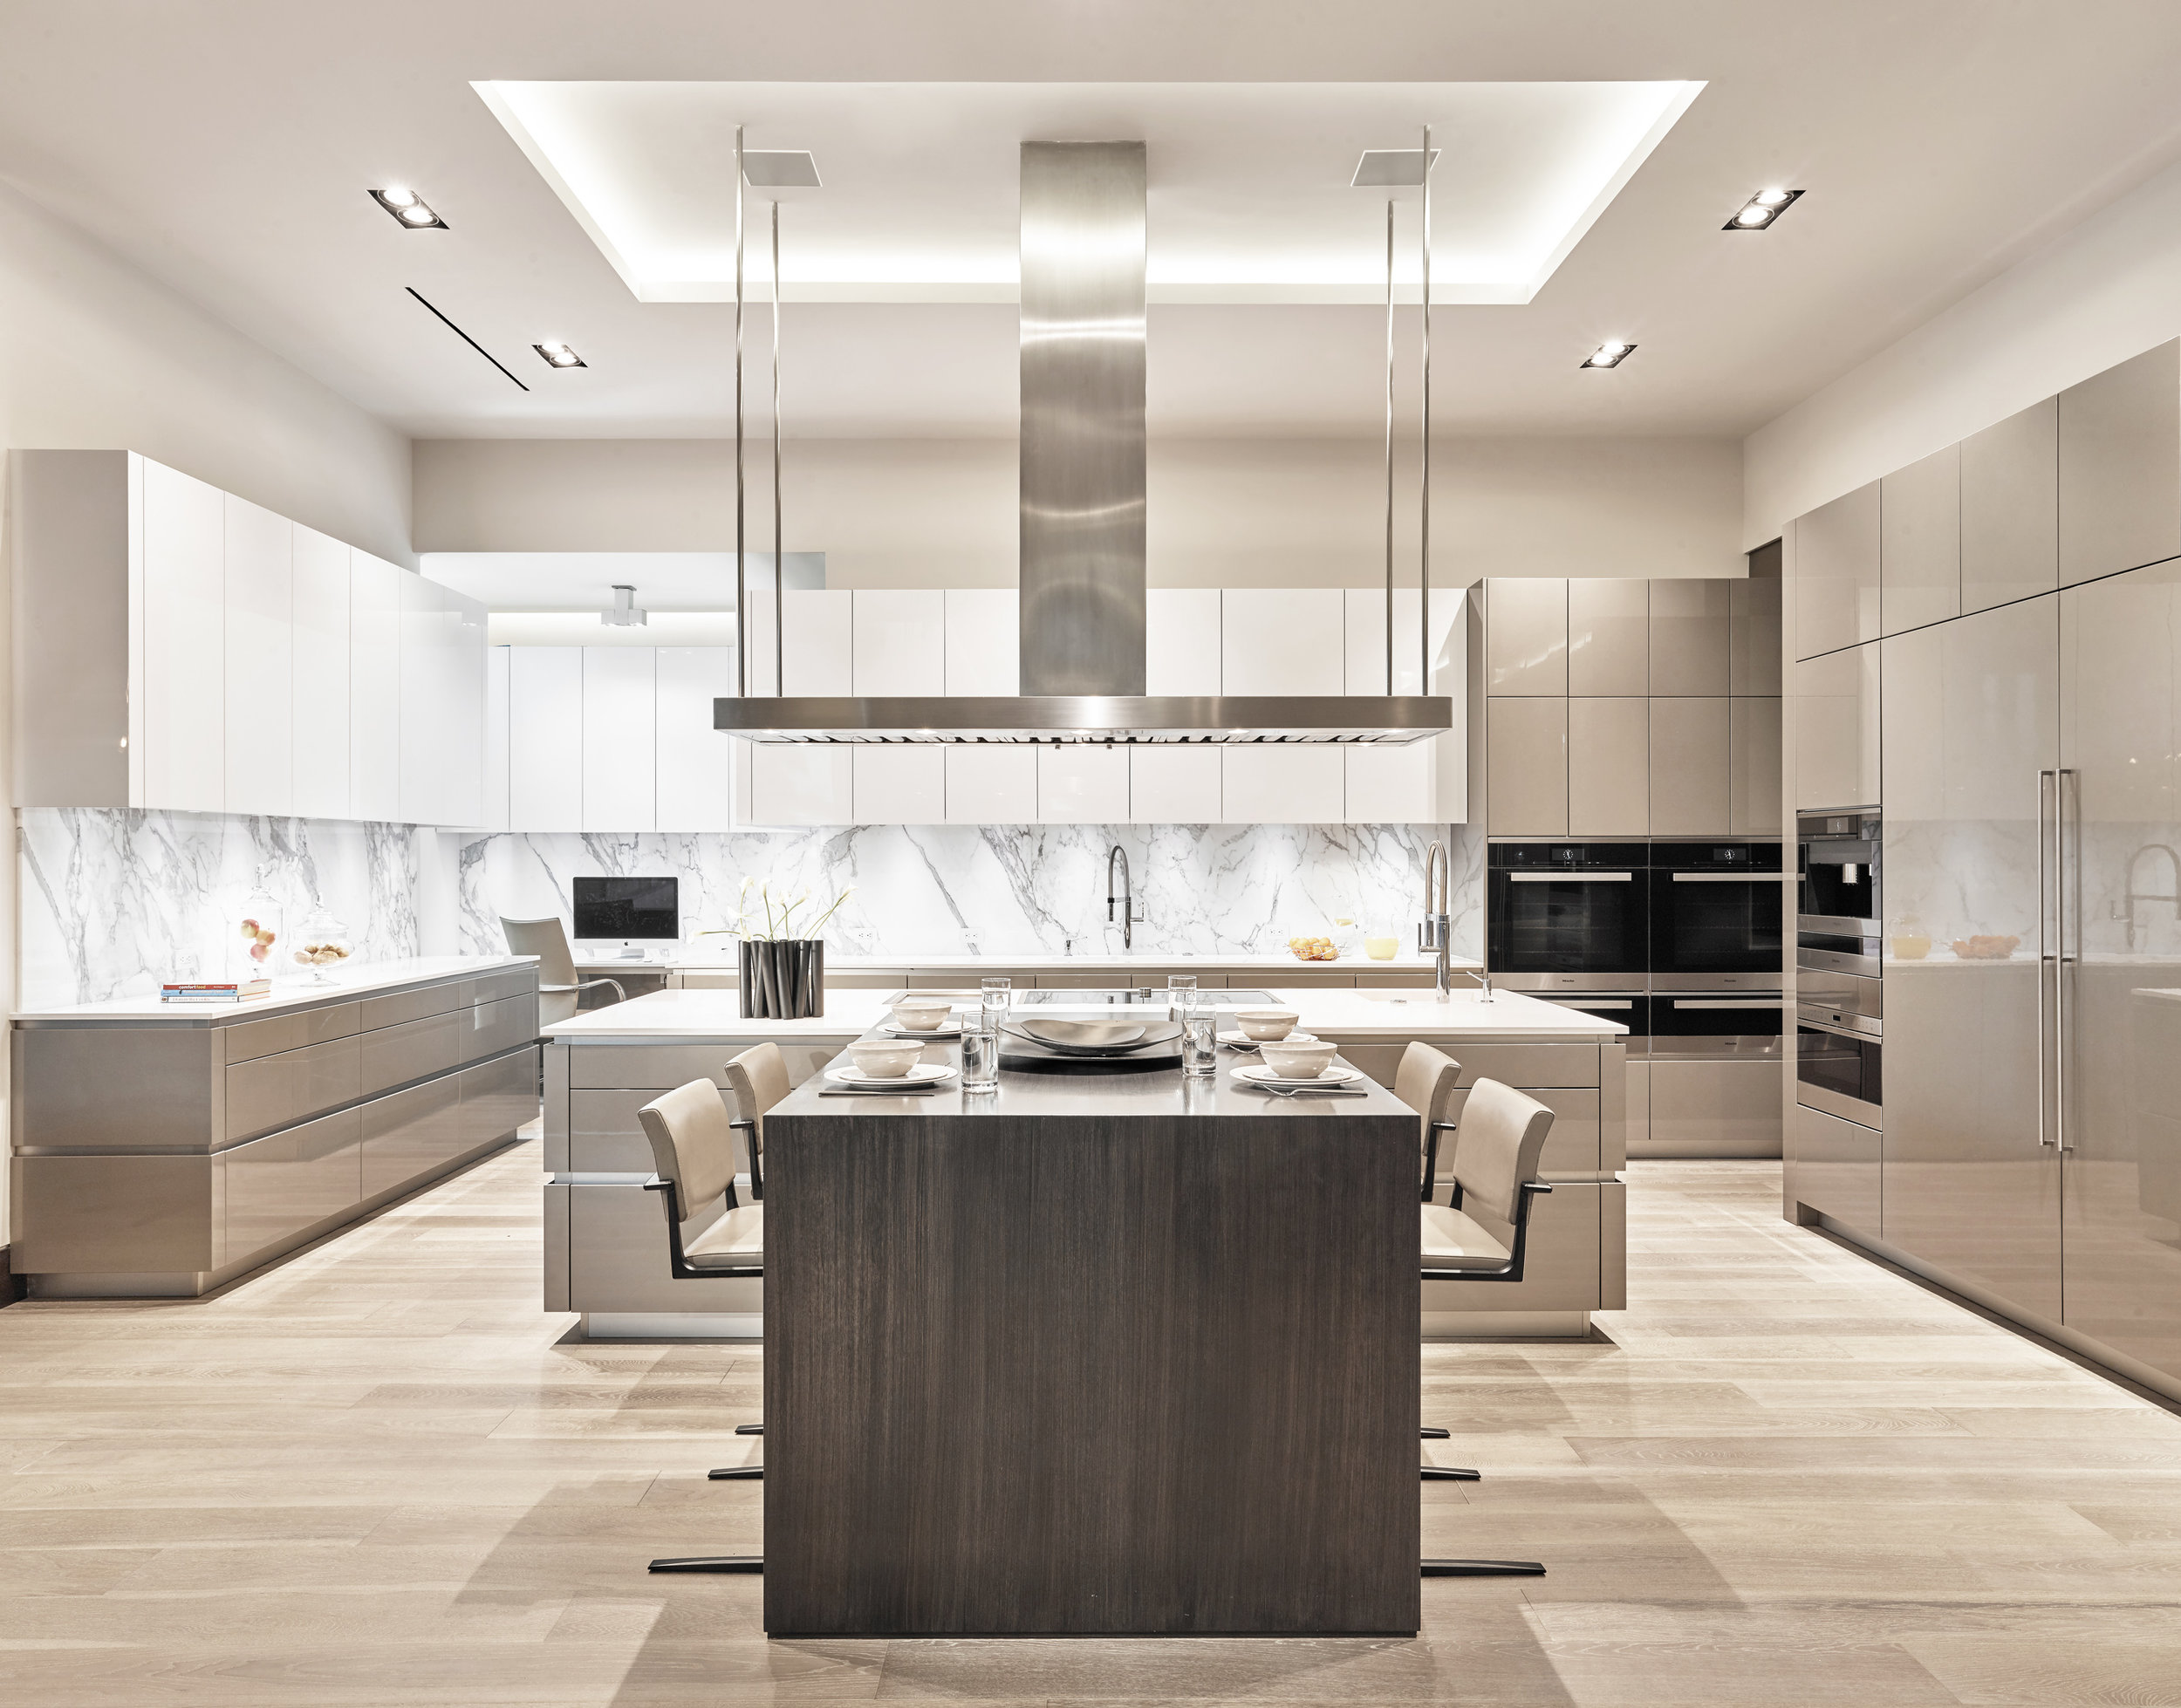 DeSat_Berman_Kitchen-A 1.jpg